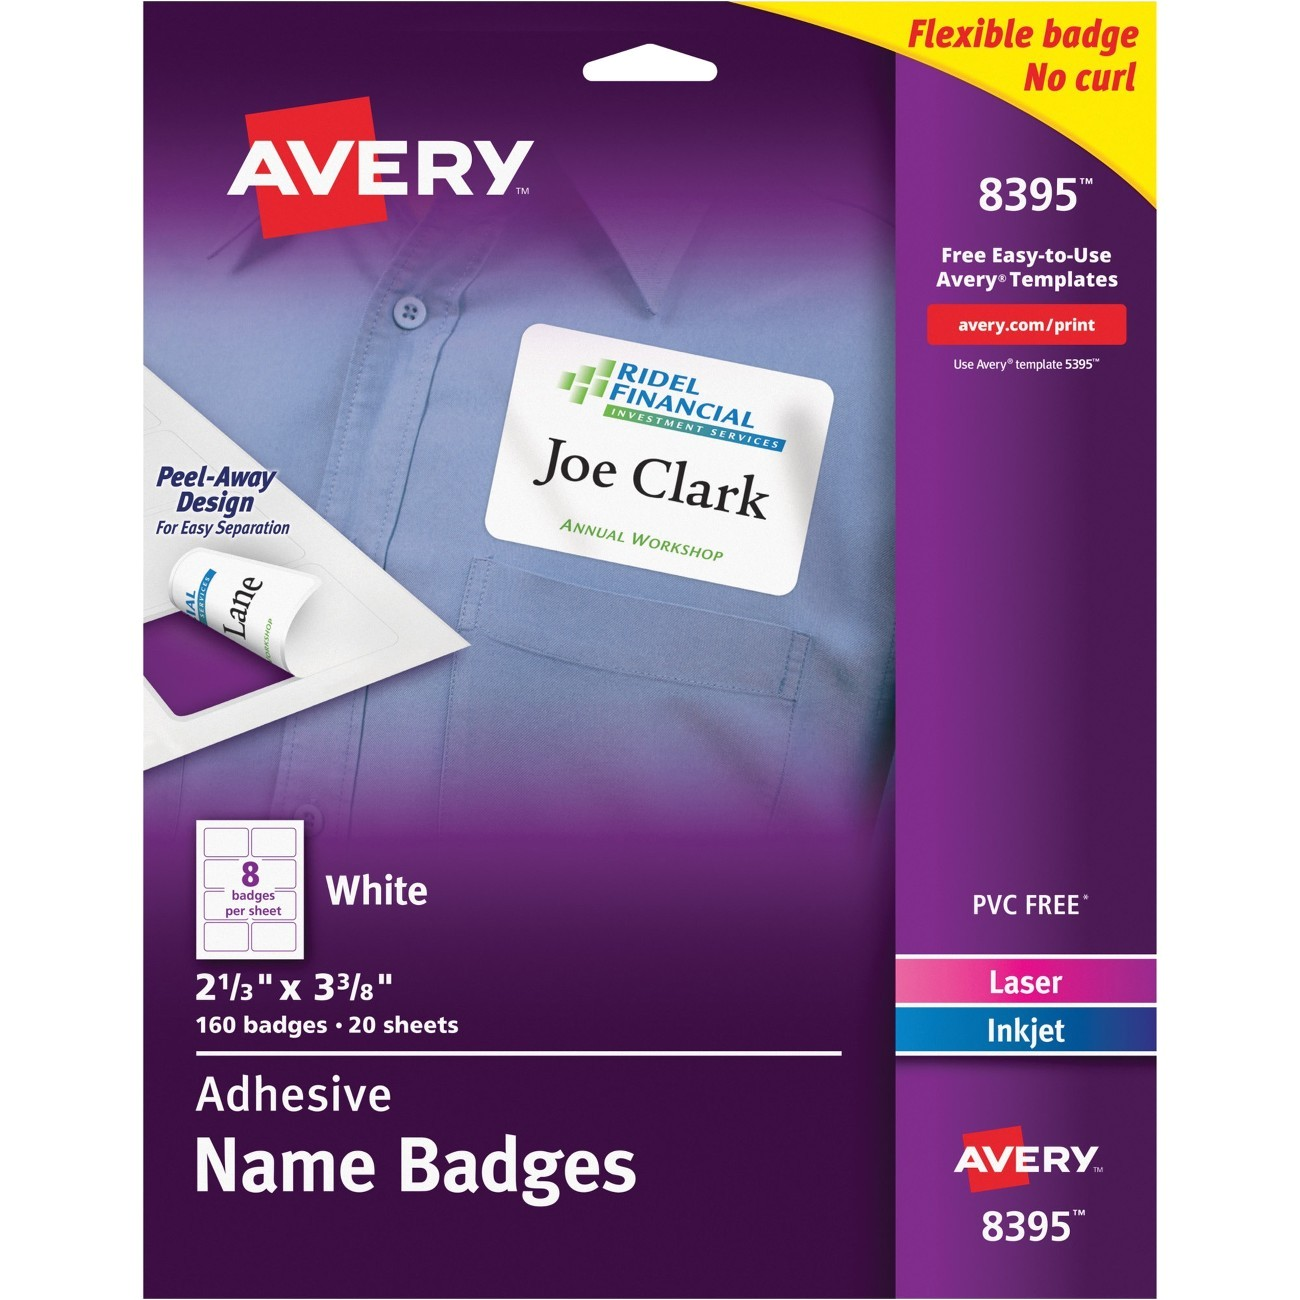 Avery White Adhesive Name Badges 8395 Template Ave8395 Avery Name Badge Label Myofficeinnovations Com